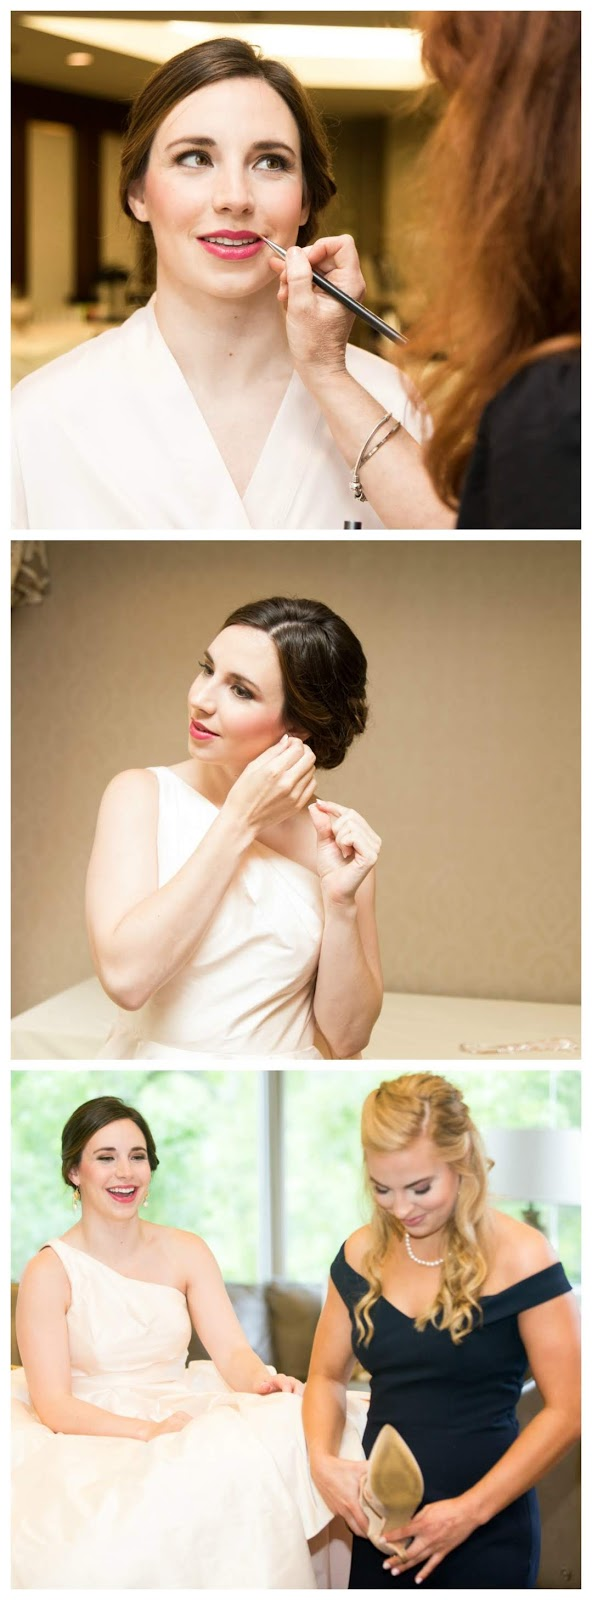 Makeup by Keri Ann _ Lawrence Elizabeth Knox Wedding Photography _ Houston Racquet Club Weddings